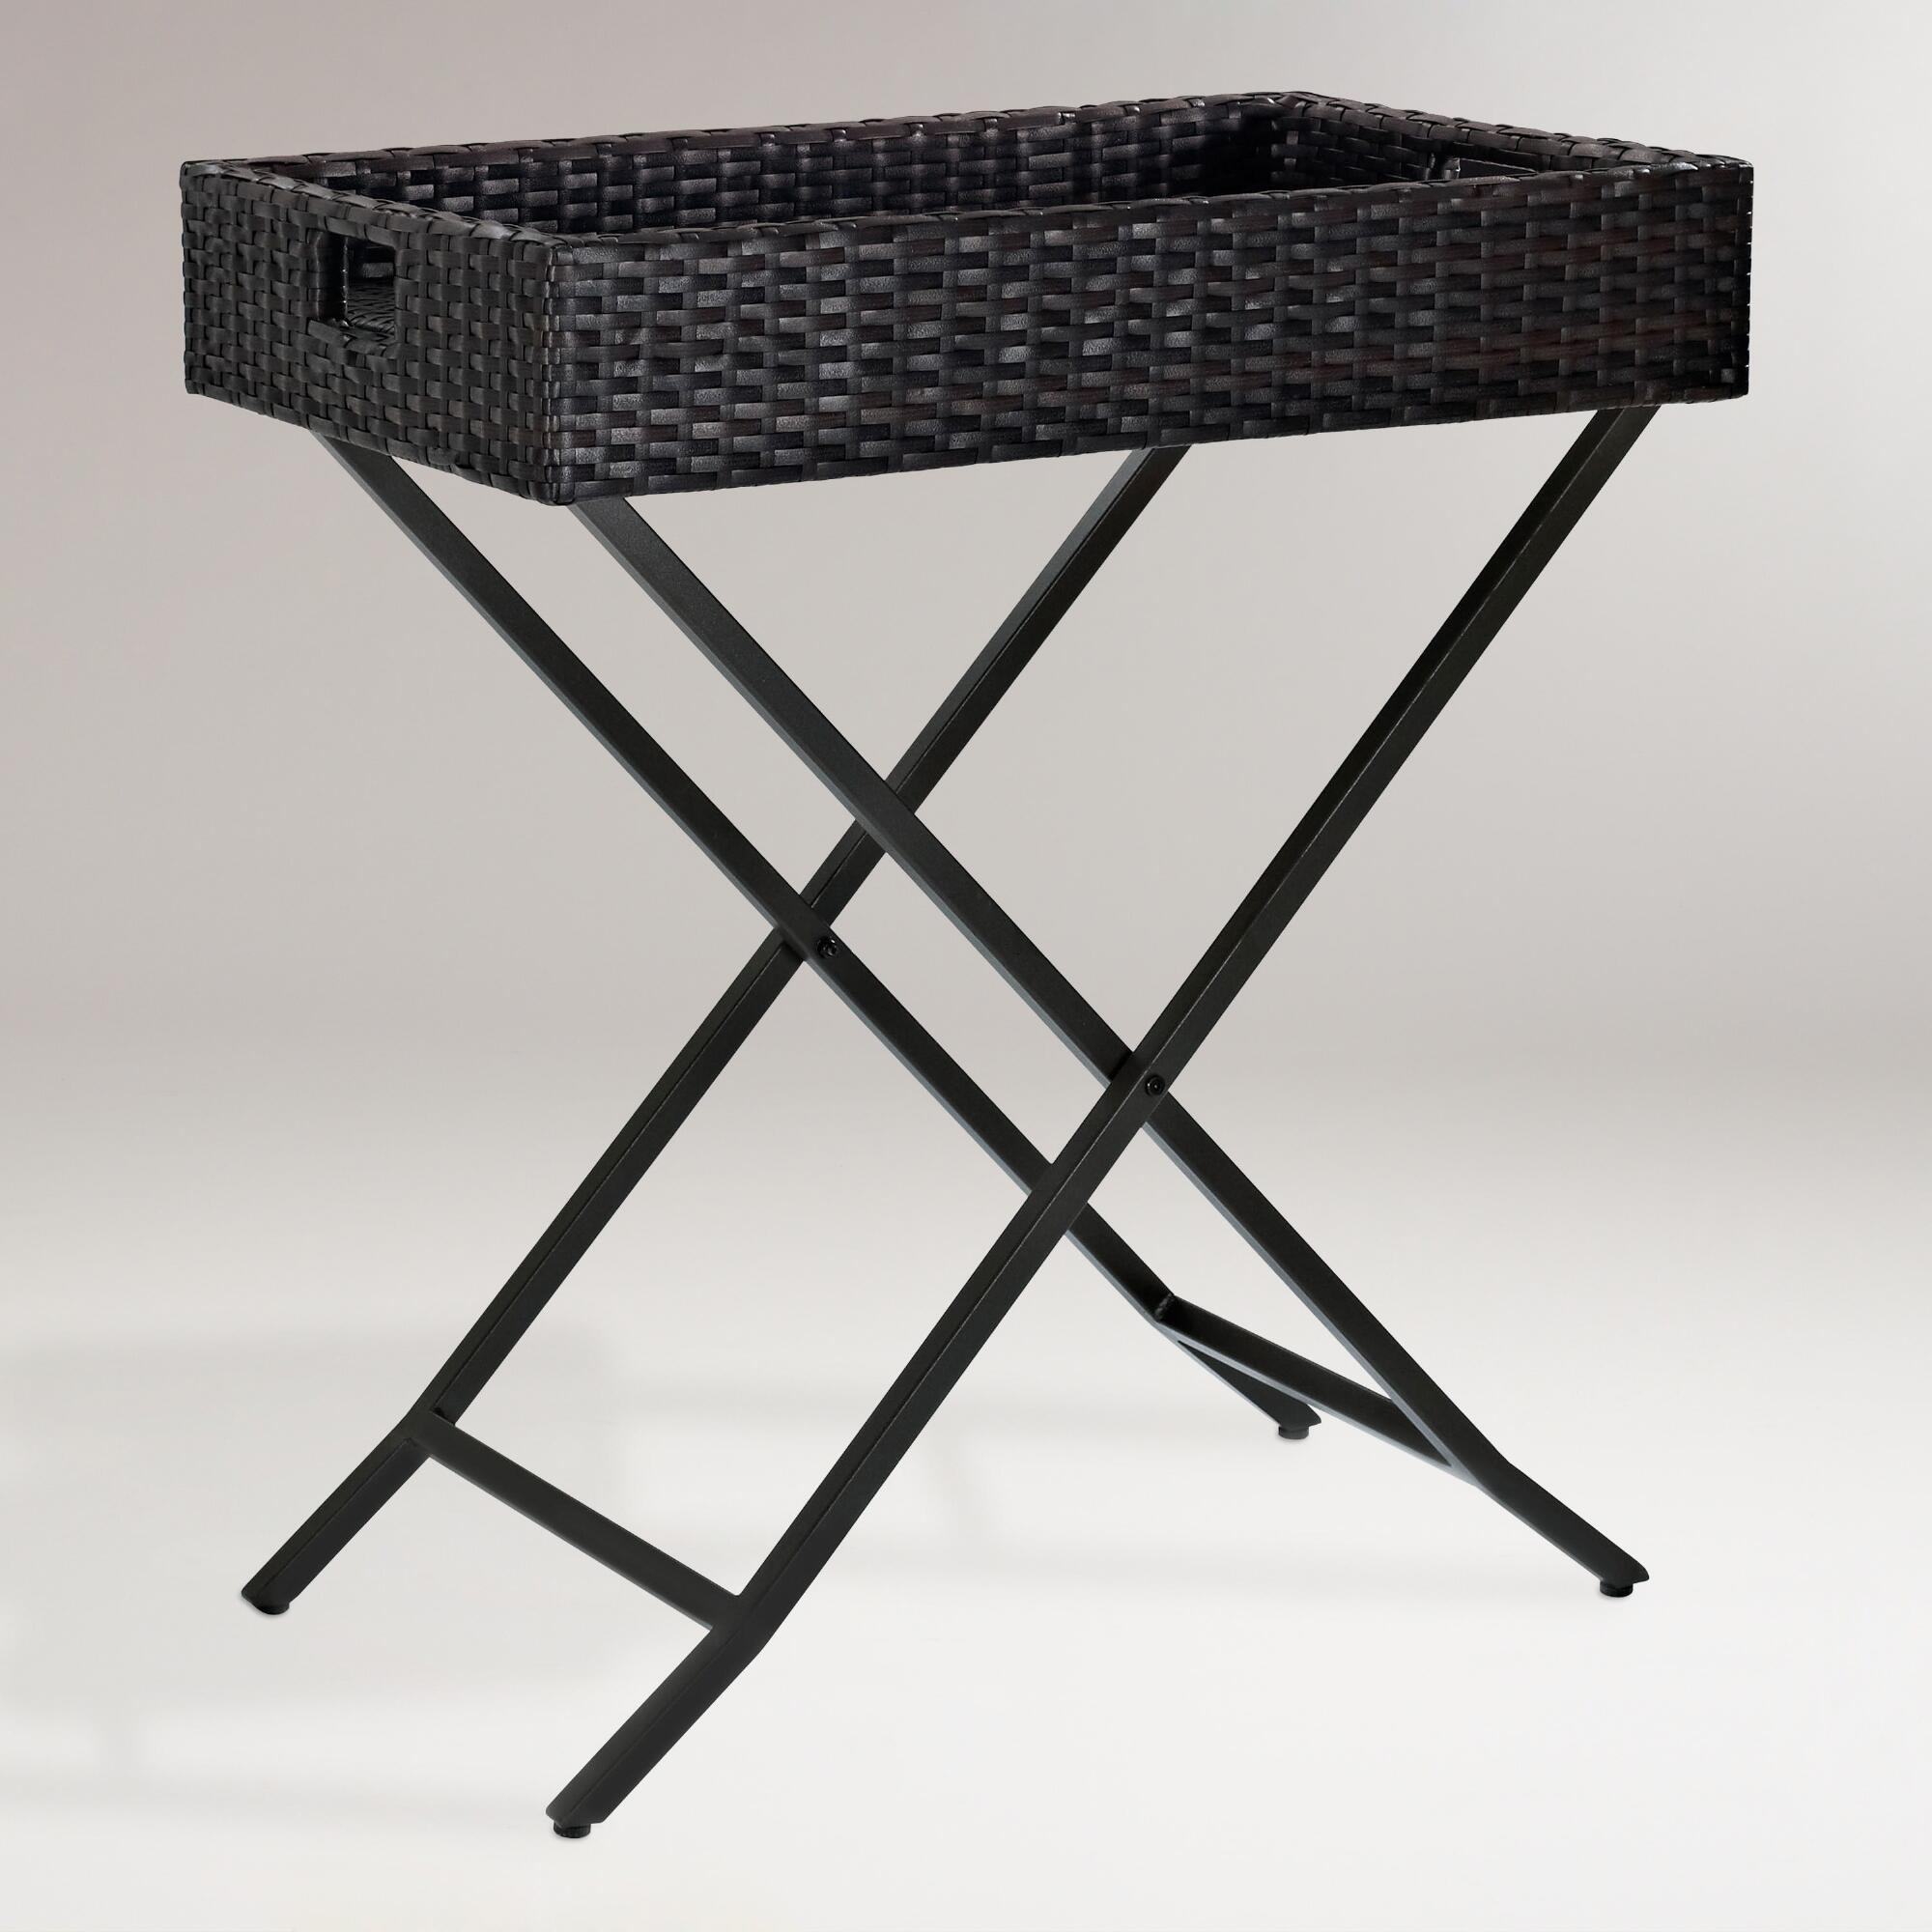 Pinamar Butler Tray Table: Brown - Resin by World Market